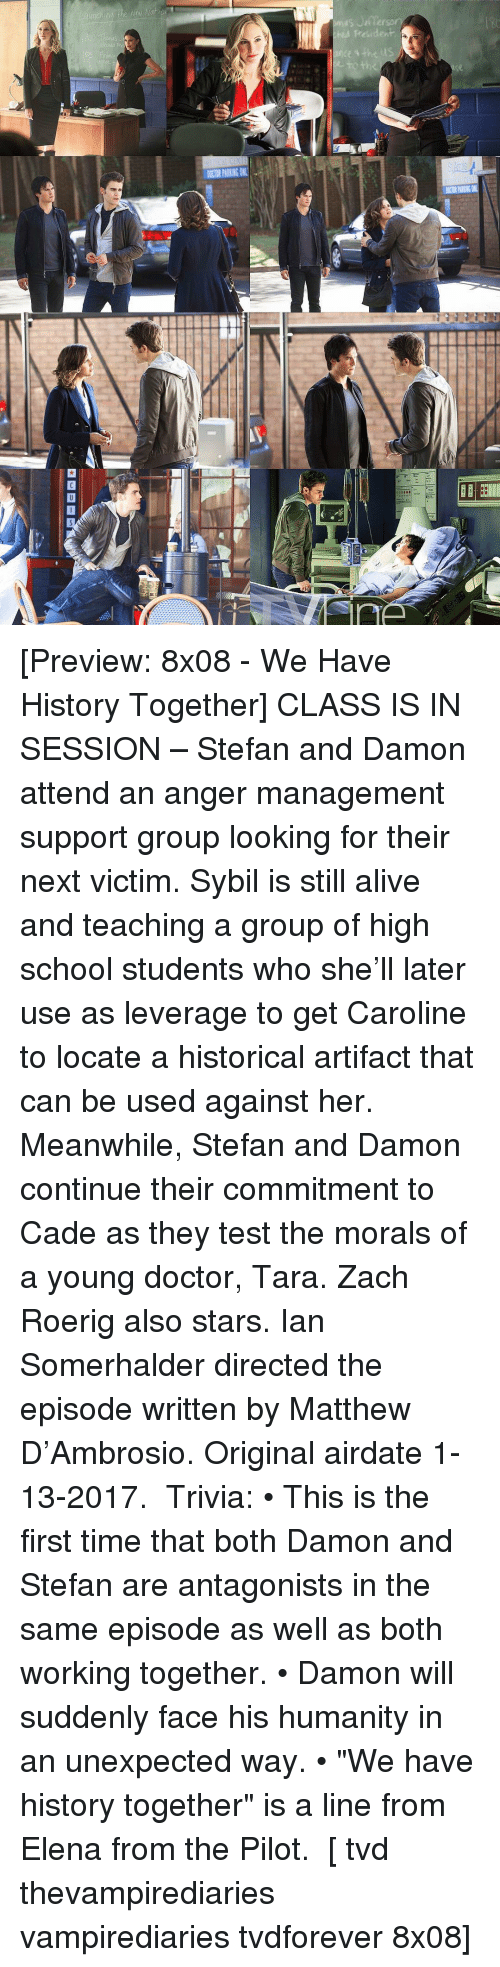 "Memes, Historical, and Anger Management: ーーーラRE illm  DOORPASEN [Preview: 8x08 - We Have History Together] CLASS IS IN SESSION – Stefan and Damon attend an anger management support group looking for their next victim. Sybil is still alive and teaching a group of high school students who she'll later use as leverage to get Caroline to locate a historical artifact that can be used against her. Meanwhile, Stefan and Damon continue their commitment to Cade as they test the morals of a young doctor, Tara. Zach Roerig also stars. Ian Somerhalder directed the episode written by Matthew D'Ambrosio. Original airdate ‪1-13-2017‬. ⠀ Trivia: • This is the first time that both Damon and Stefan are antagonists in the same episode as well as both working together. • Damon will suddenly face his humanity in an unexpected way. • ""We have history together"" is a line from Elena from the Pilot. ⠀ [ tvd thevampirediaries vampirediaries tvdforever 8x08]"